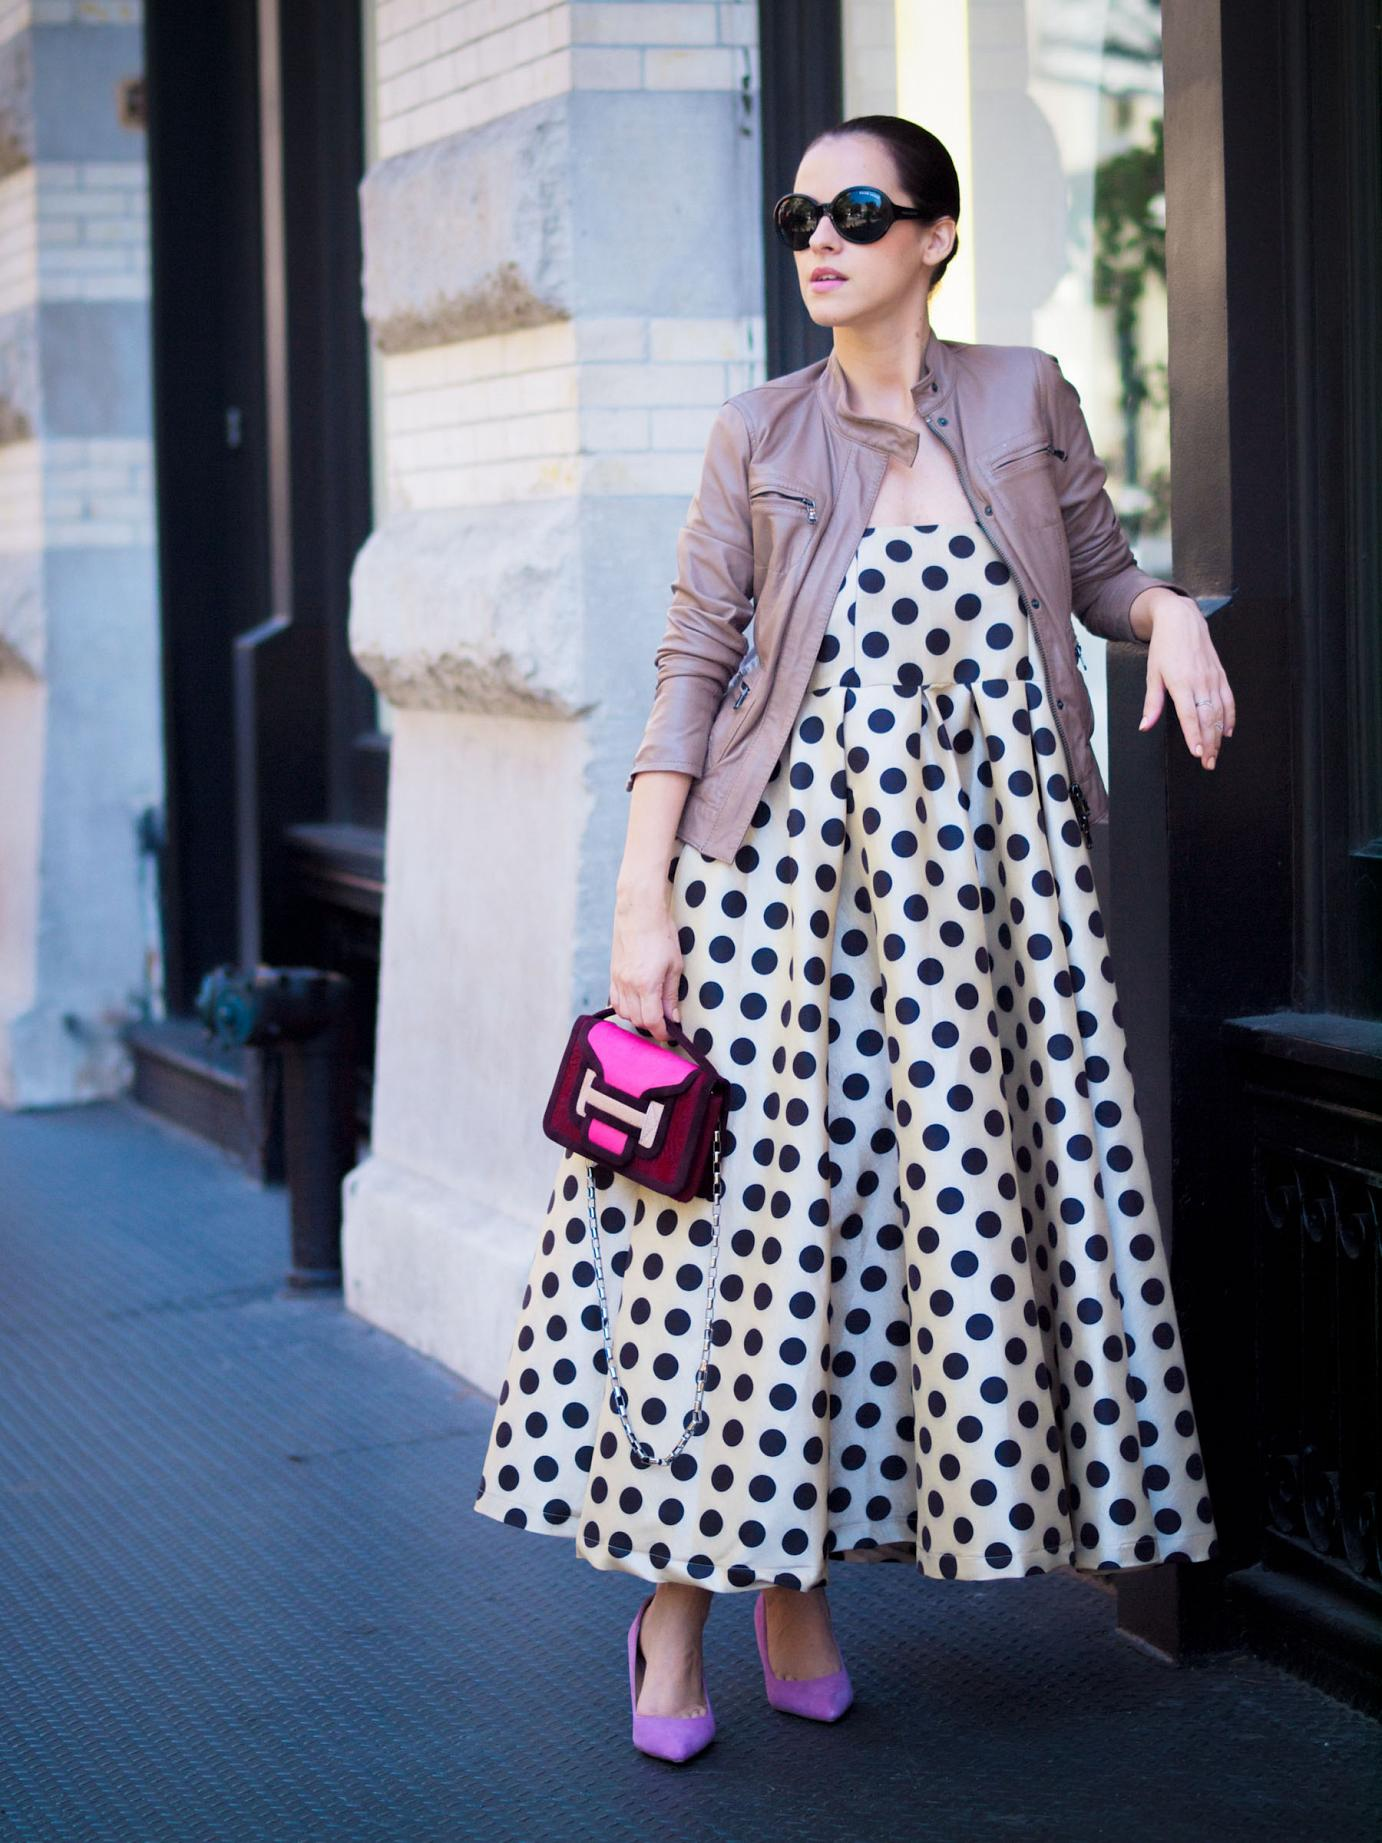 bittersweet colours, nyfw, nyfw september 2014, nyfw SS2015, nyfw street style, street style, New York, leather jacket, polka dot dress, polka dot prints, pink heels, pierre hardy bag, pink bag, fall trends, feminine style,